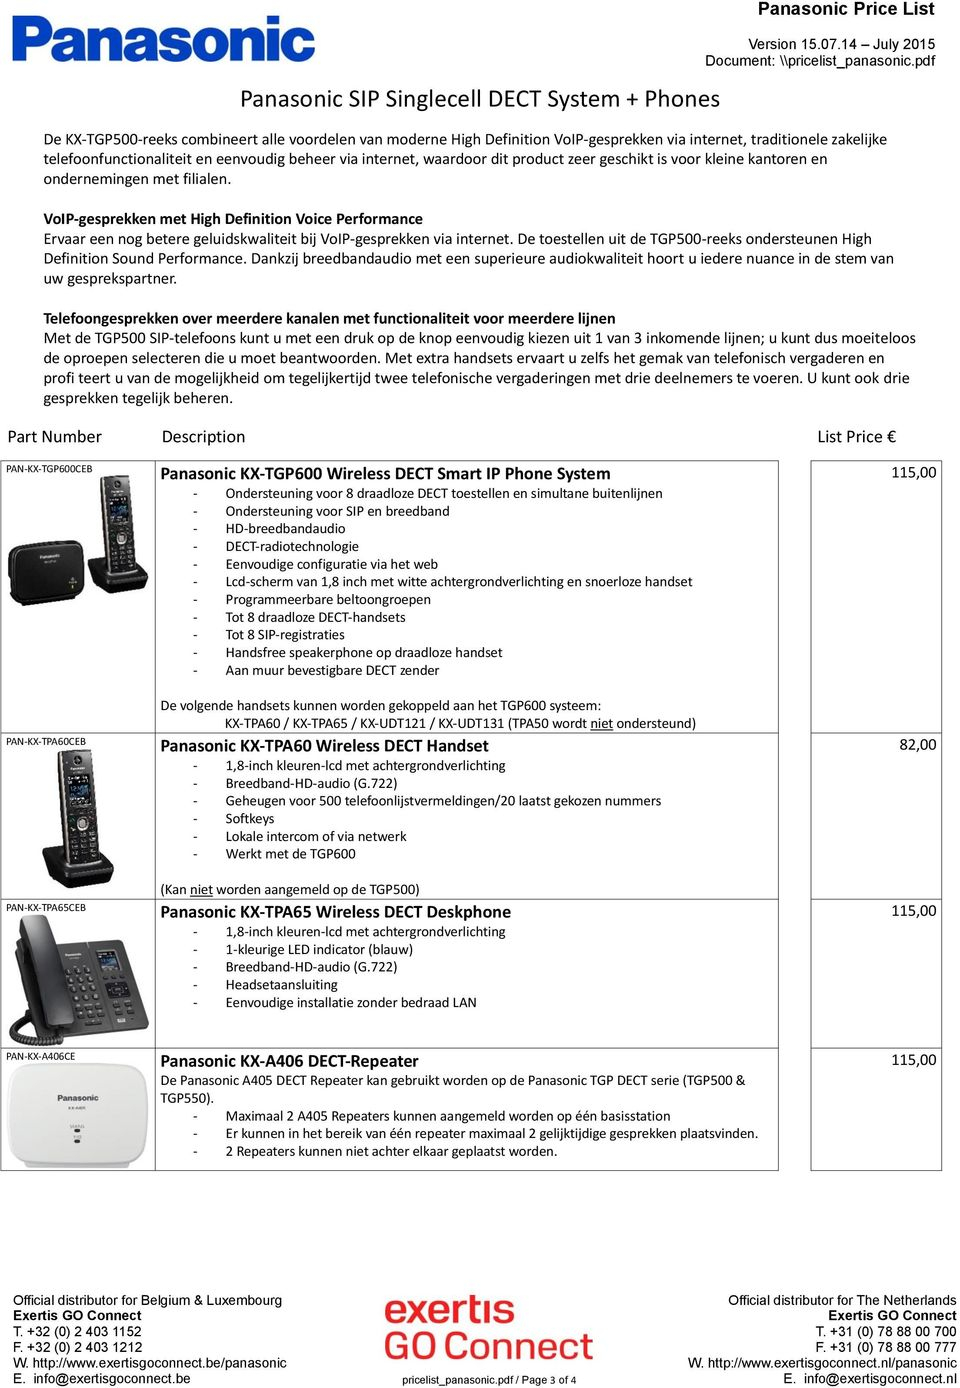 panasonic dect repeater kx a405 manual